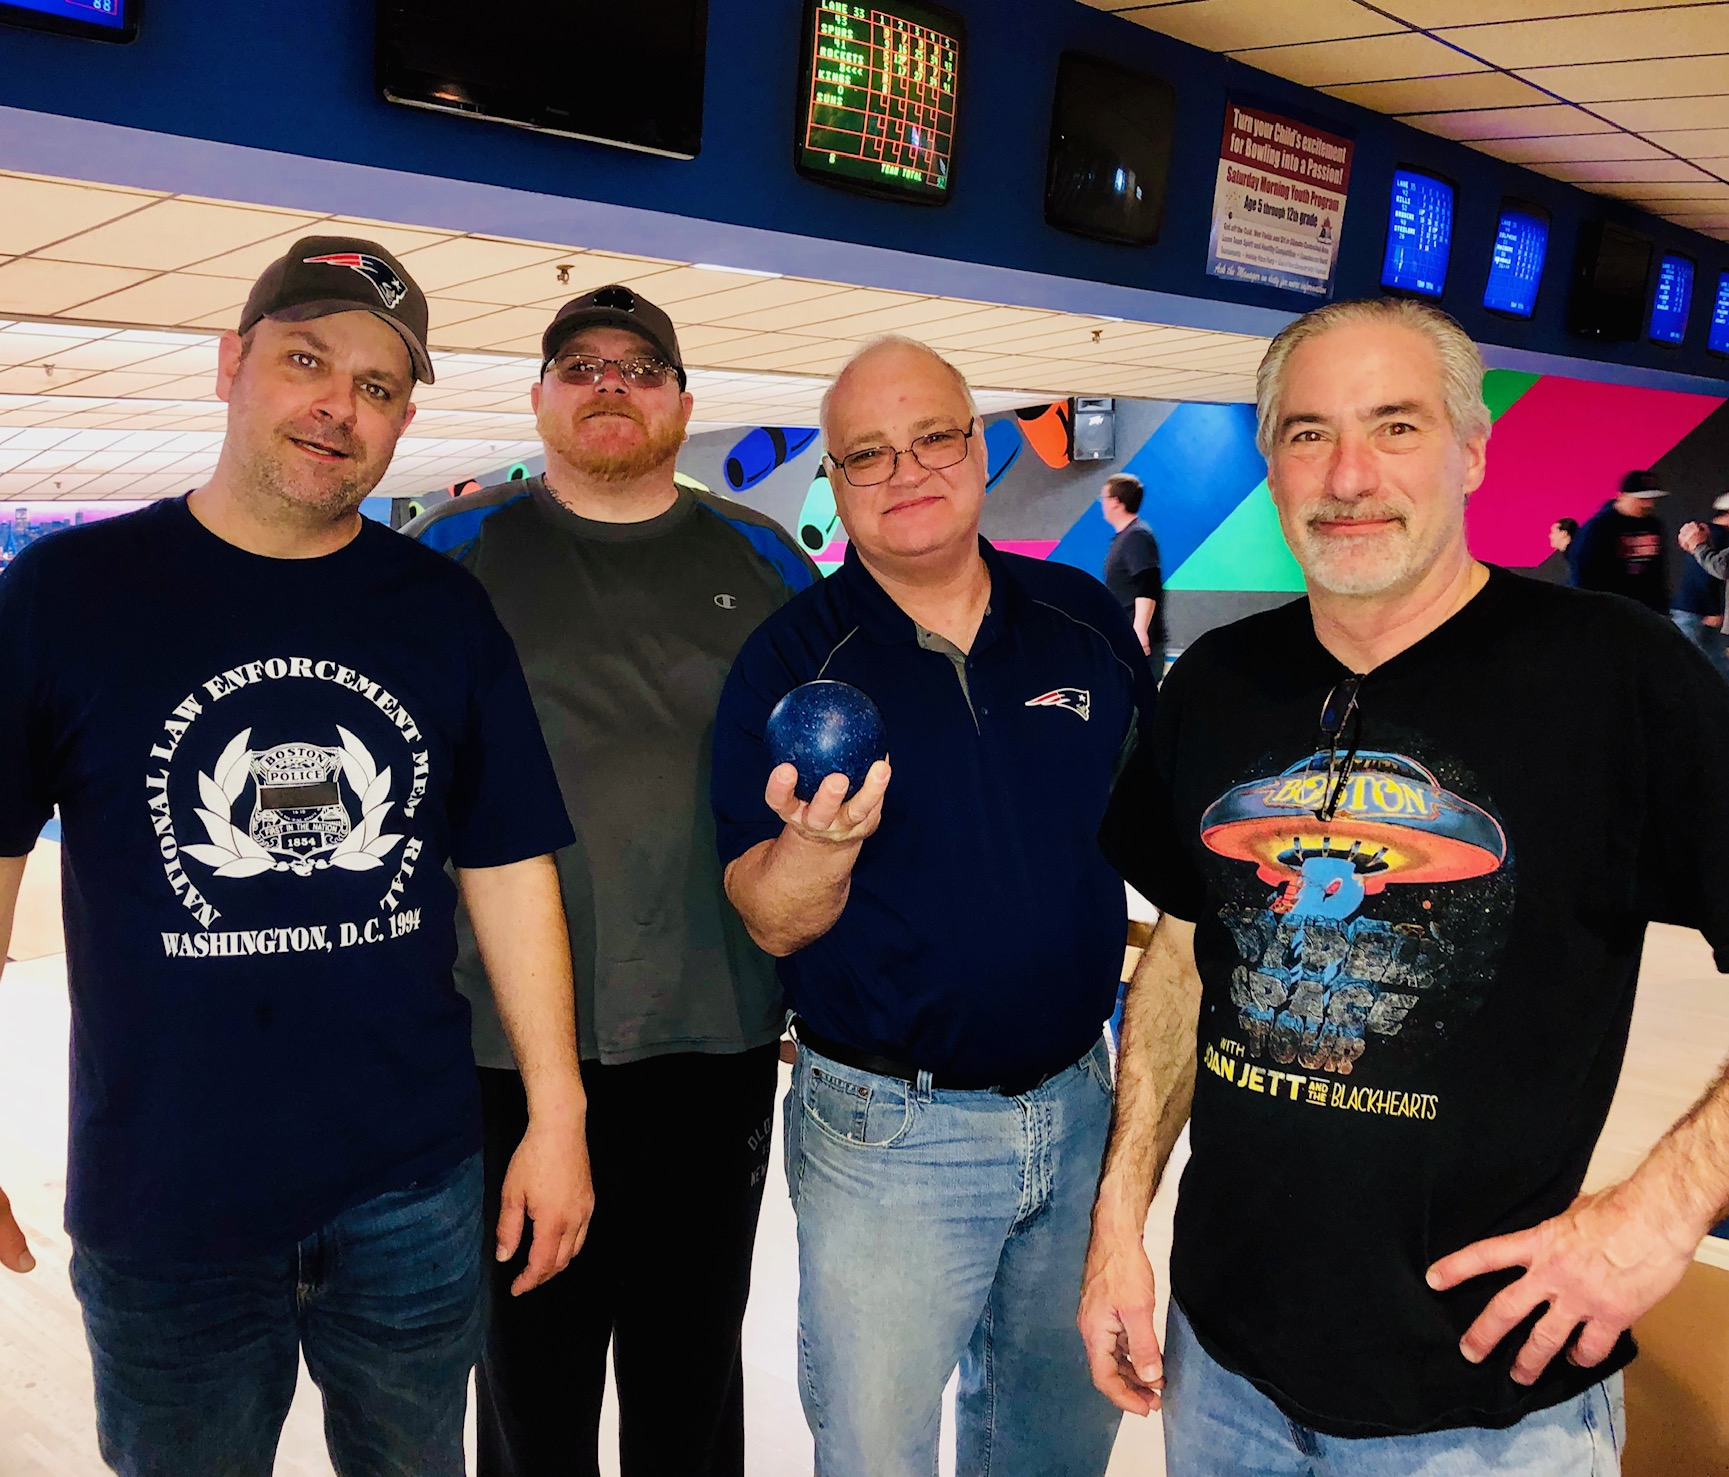 2019 MDA Bowl-A-Thon At The Woburn Bowladrome « National